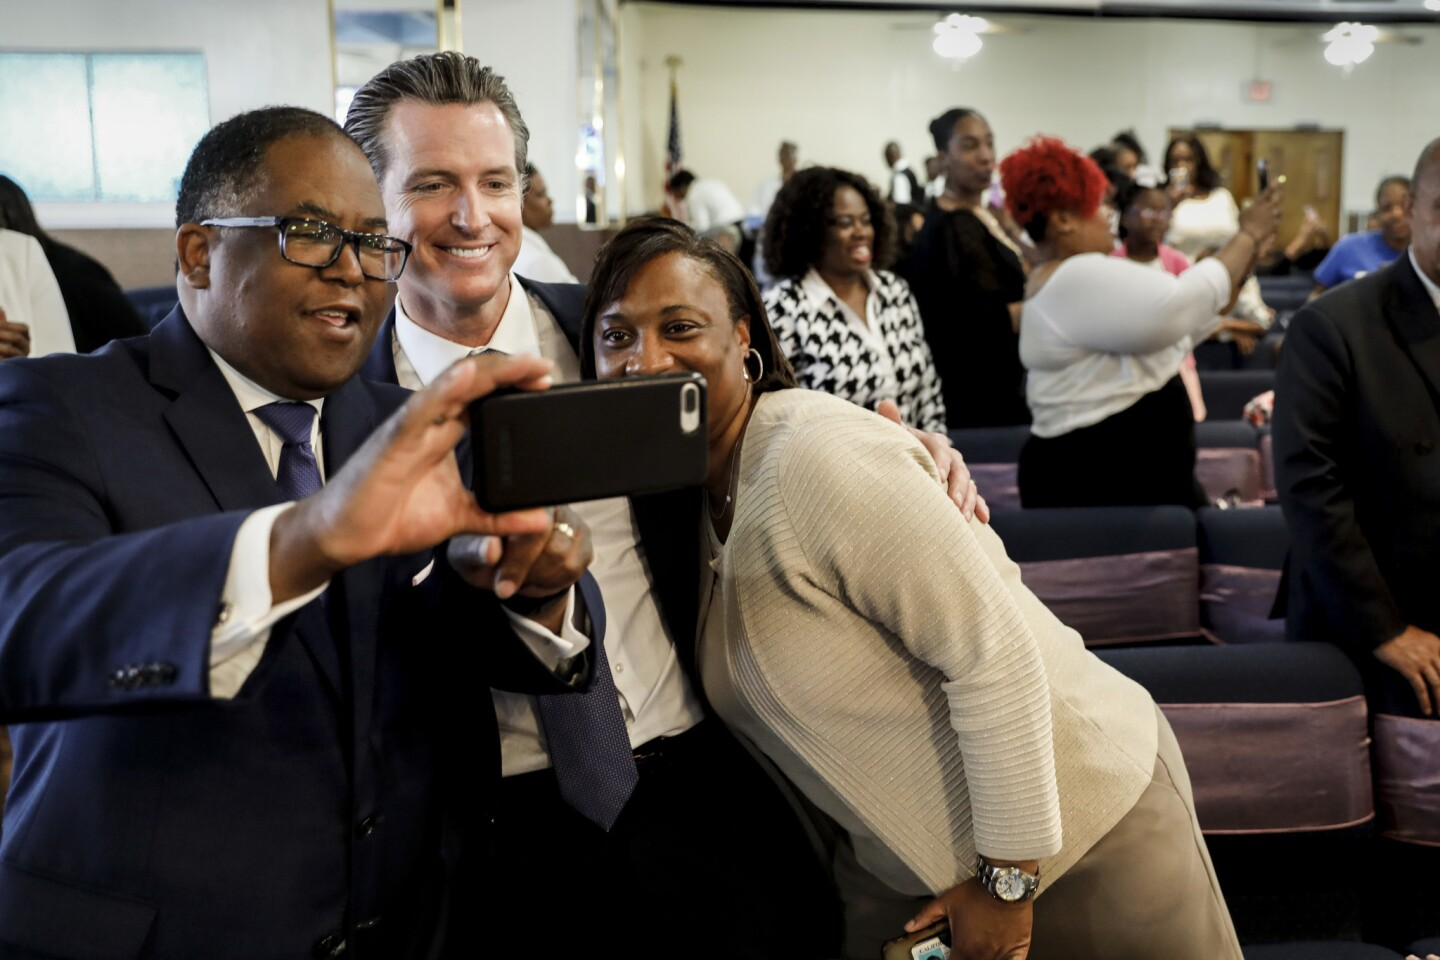 Los Angeles County Supervisor Mark Ridley-Thomas snaps a selfie on Sunday with Lt. Gov. Gavin Newsom, center, and Laphonza Butler, president of SEIU 2015, at Greater Zion Church in Compton. Newsom, who is running for governor, has led in fundraising and the polls.